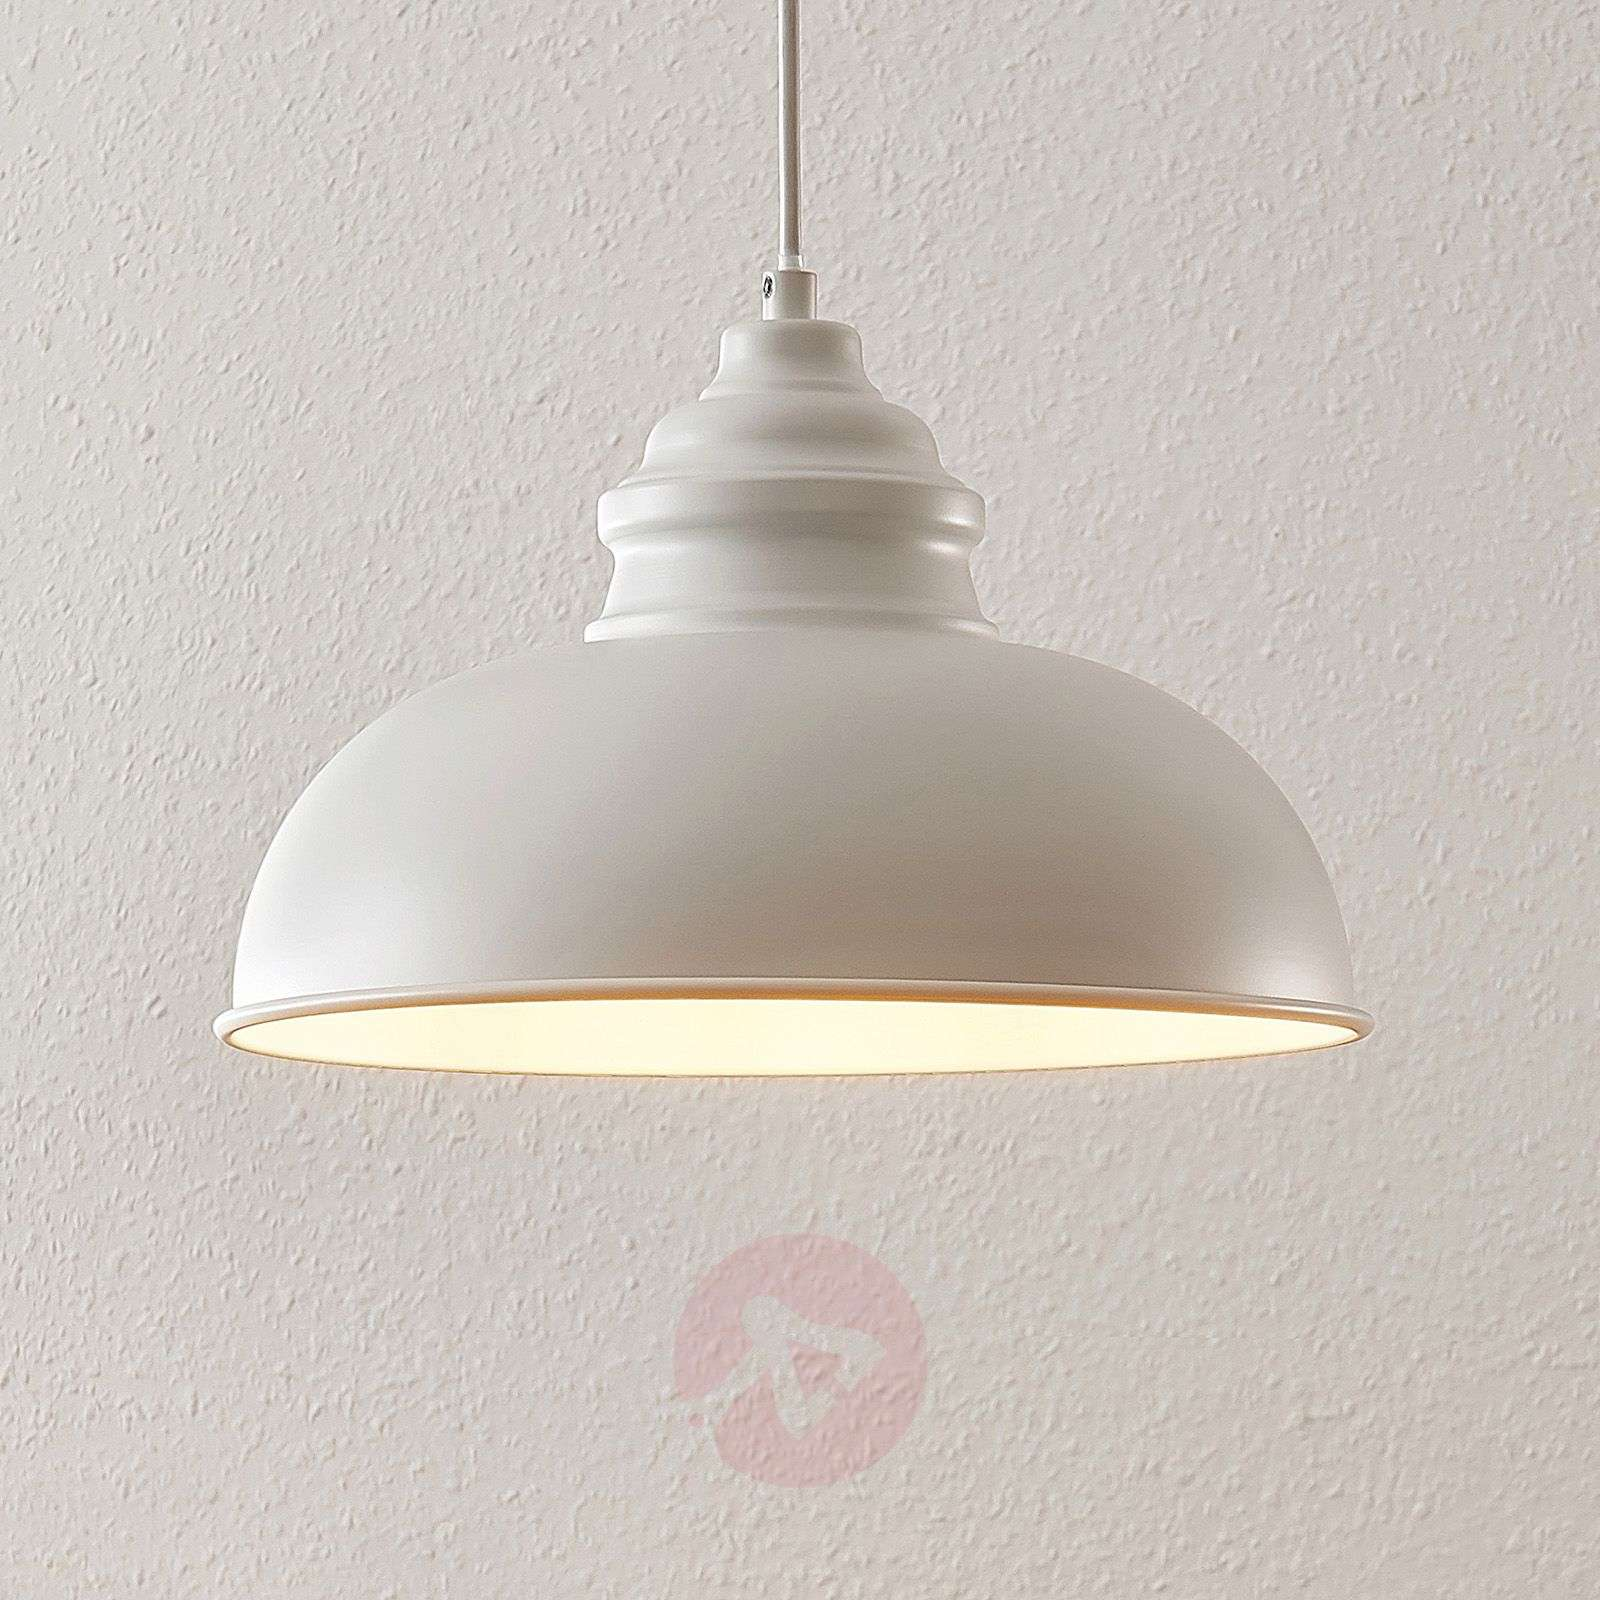 Lindby Cliona Suspension blanche mate-9639173-02